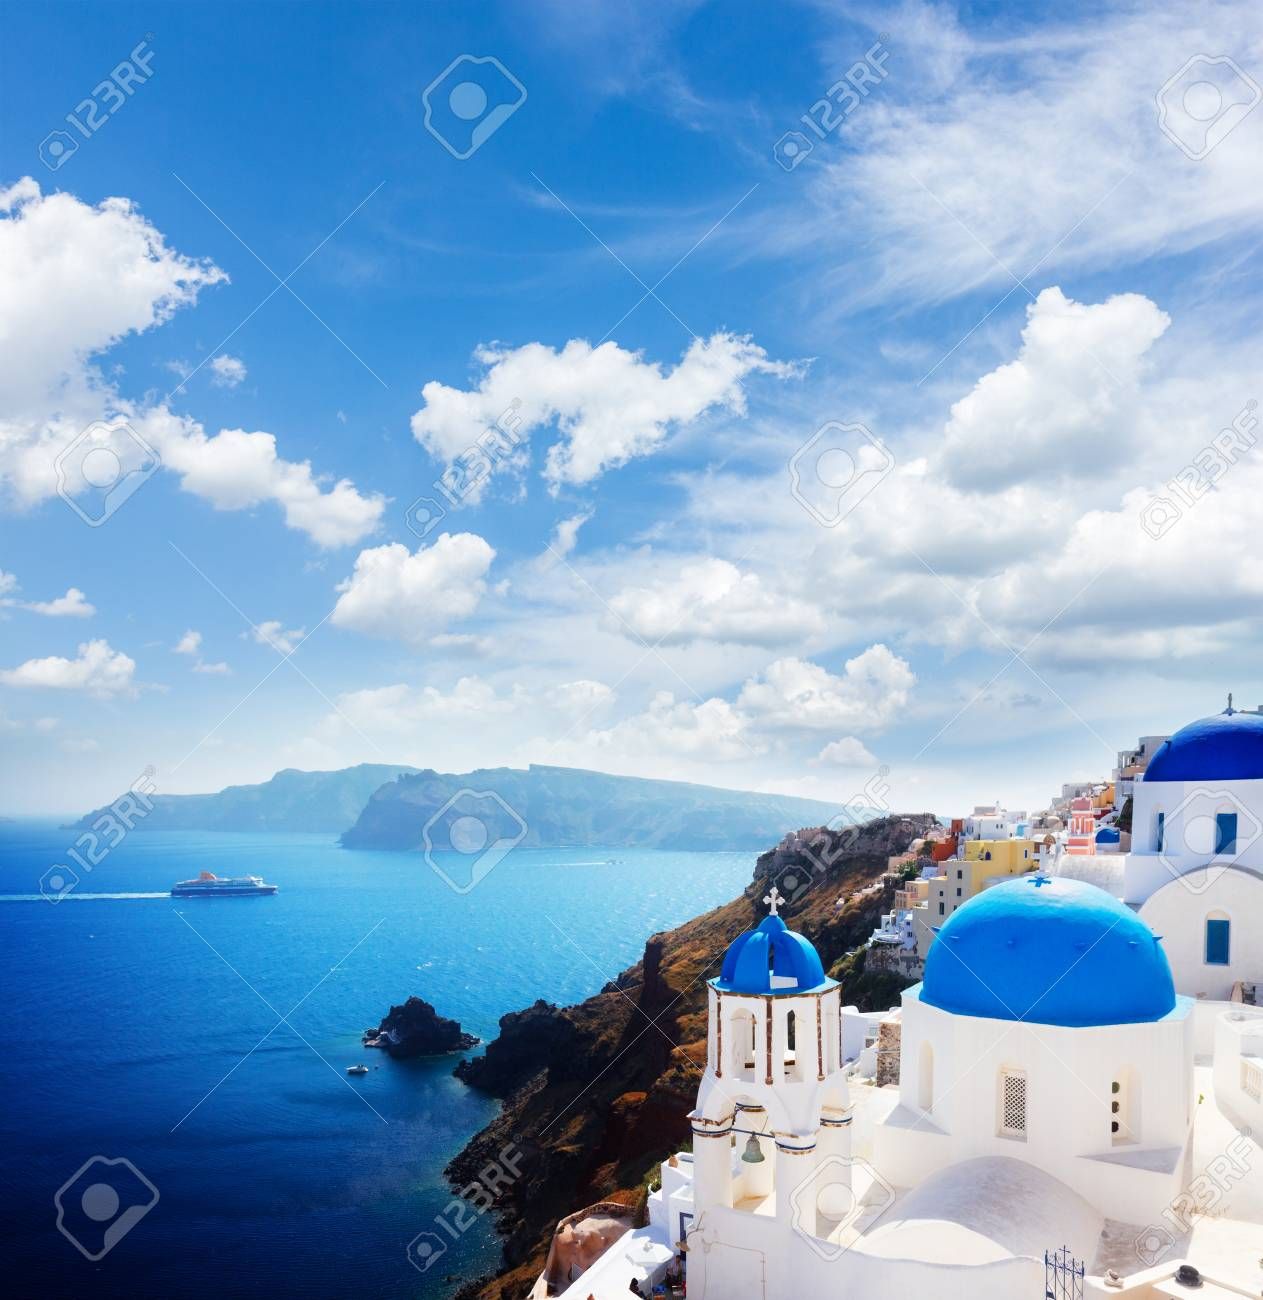 volcano caldera with blue church domes at sunny day with cloudy sky, Oia, Santorini - 94776513